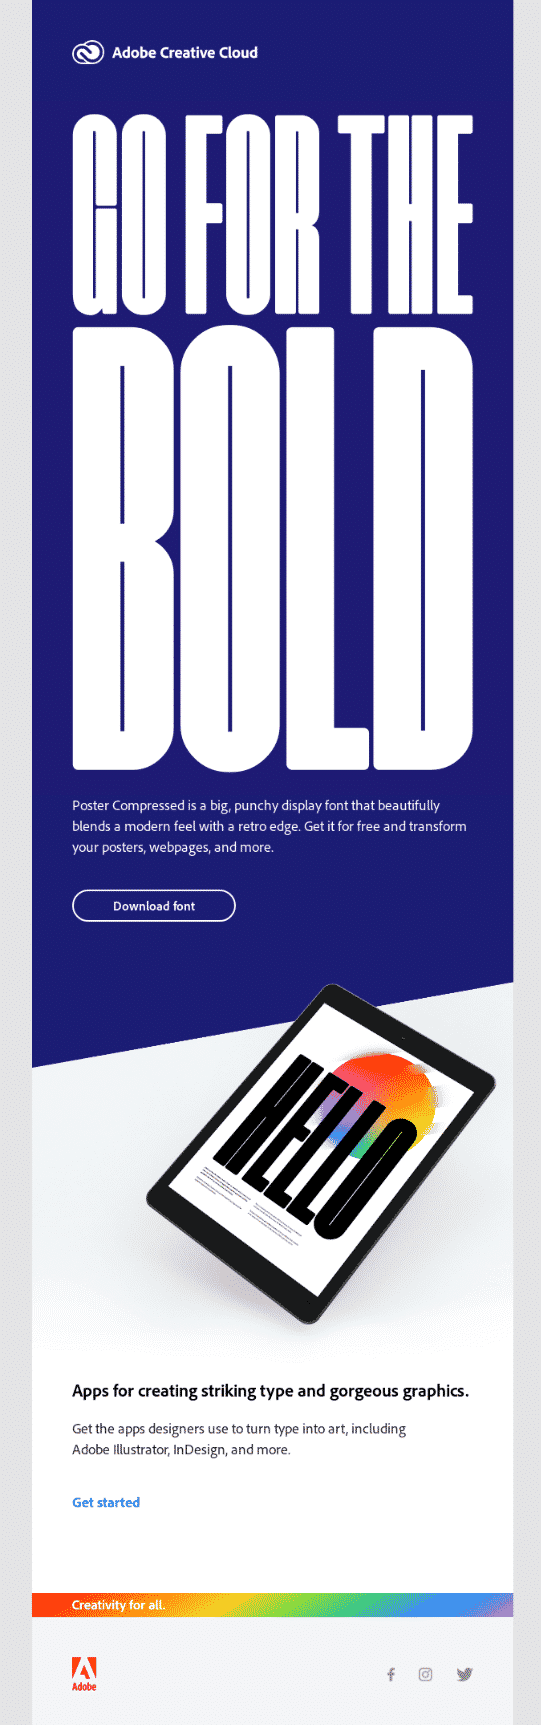 Bold typography - Email Design Trends 2021